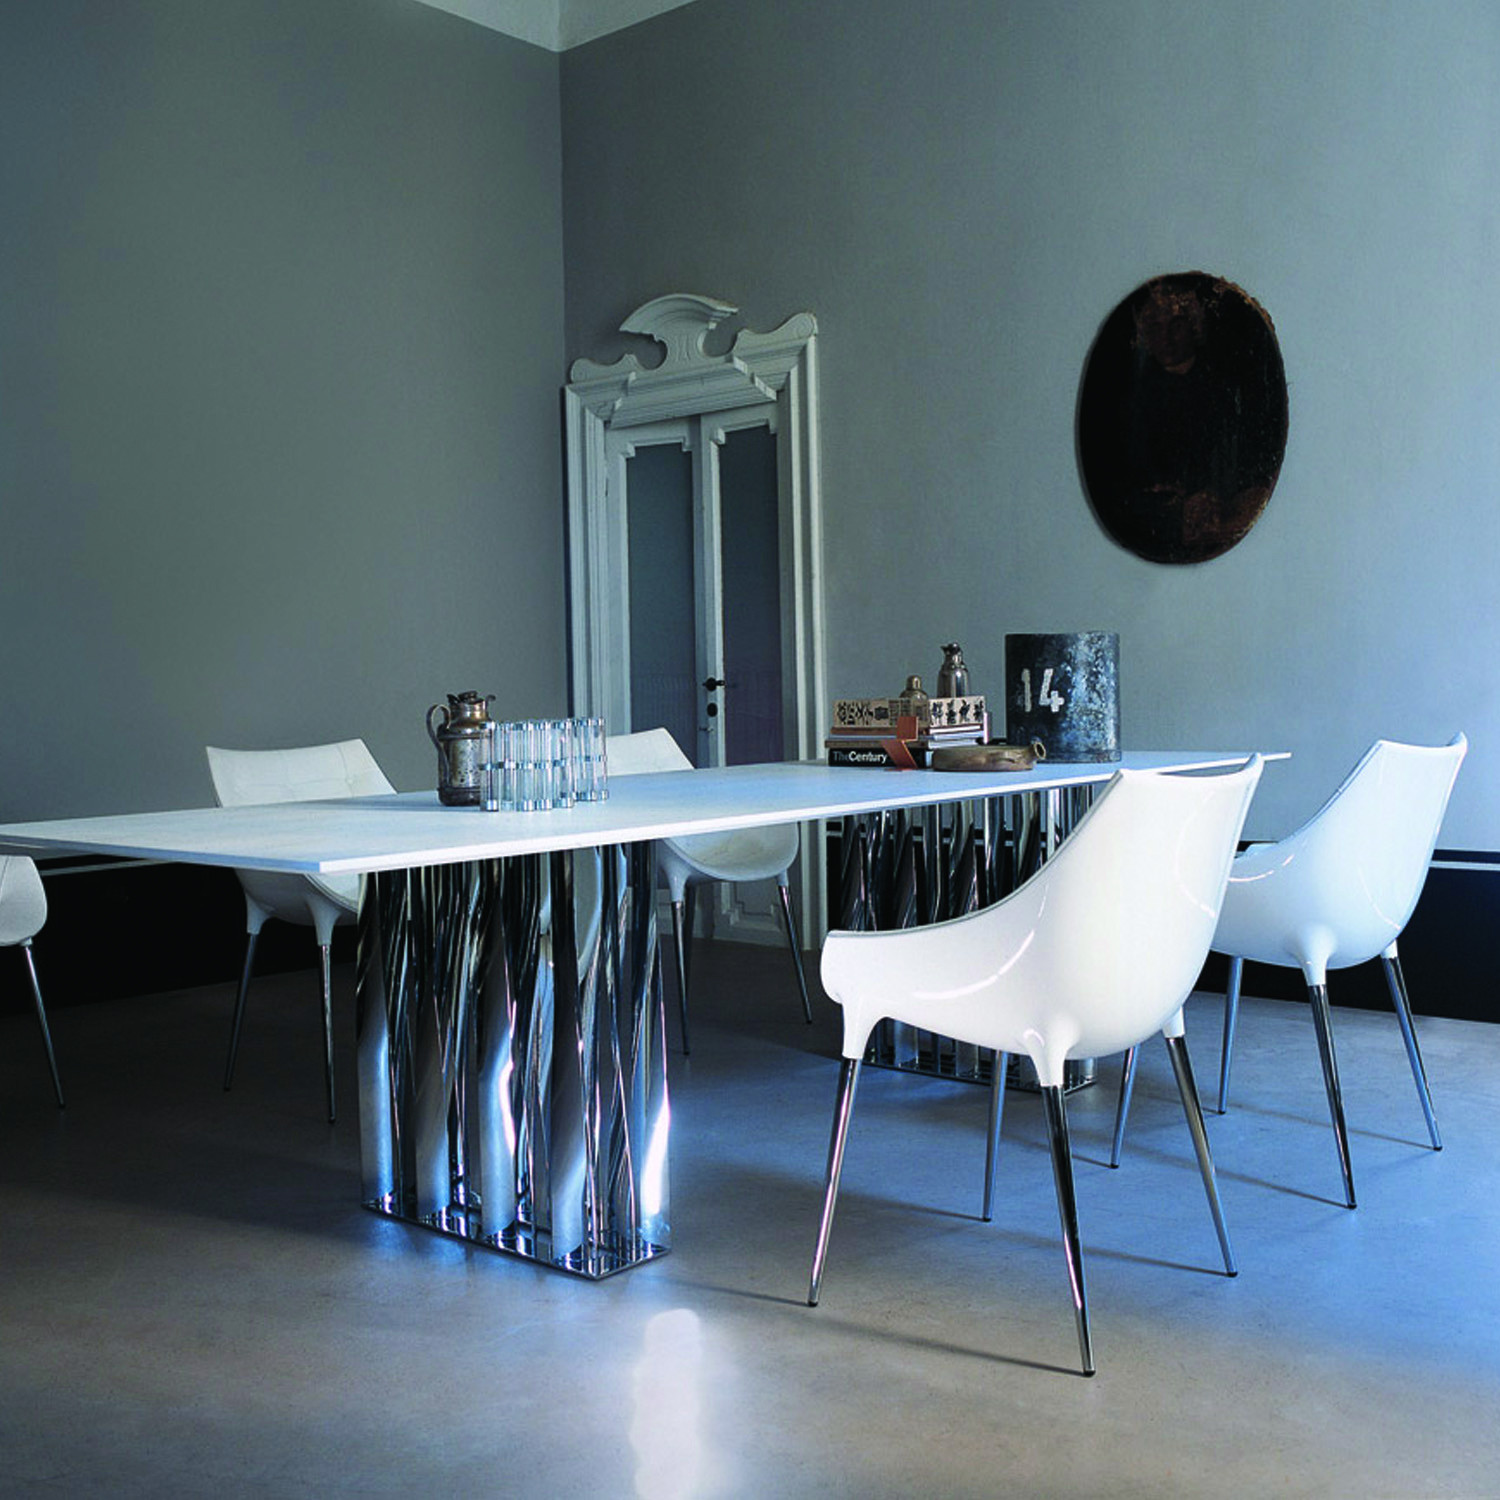 246 Passion Chairs by Cassina